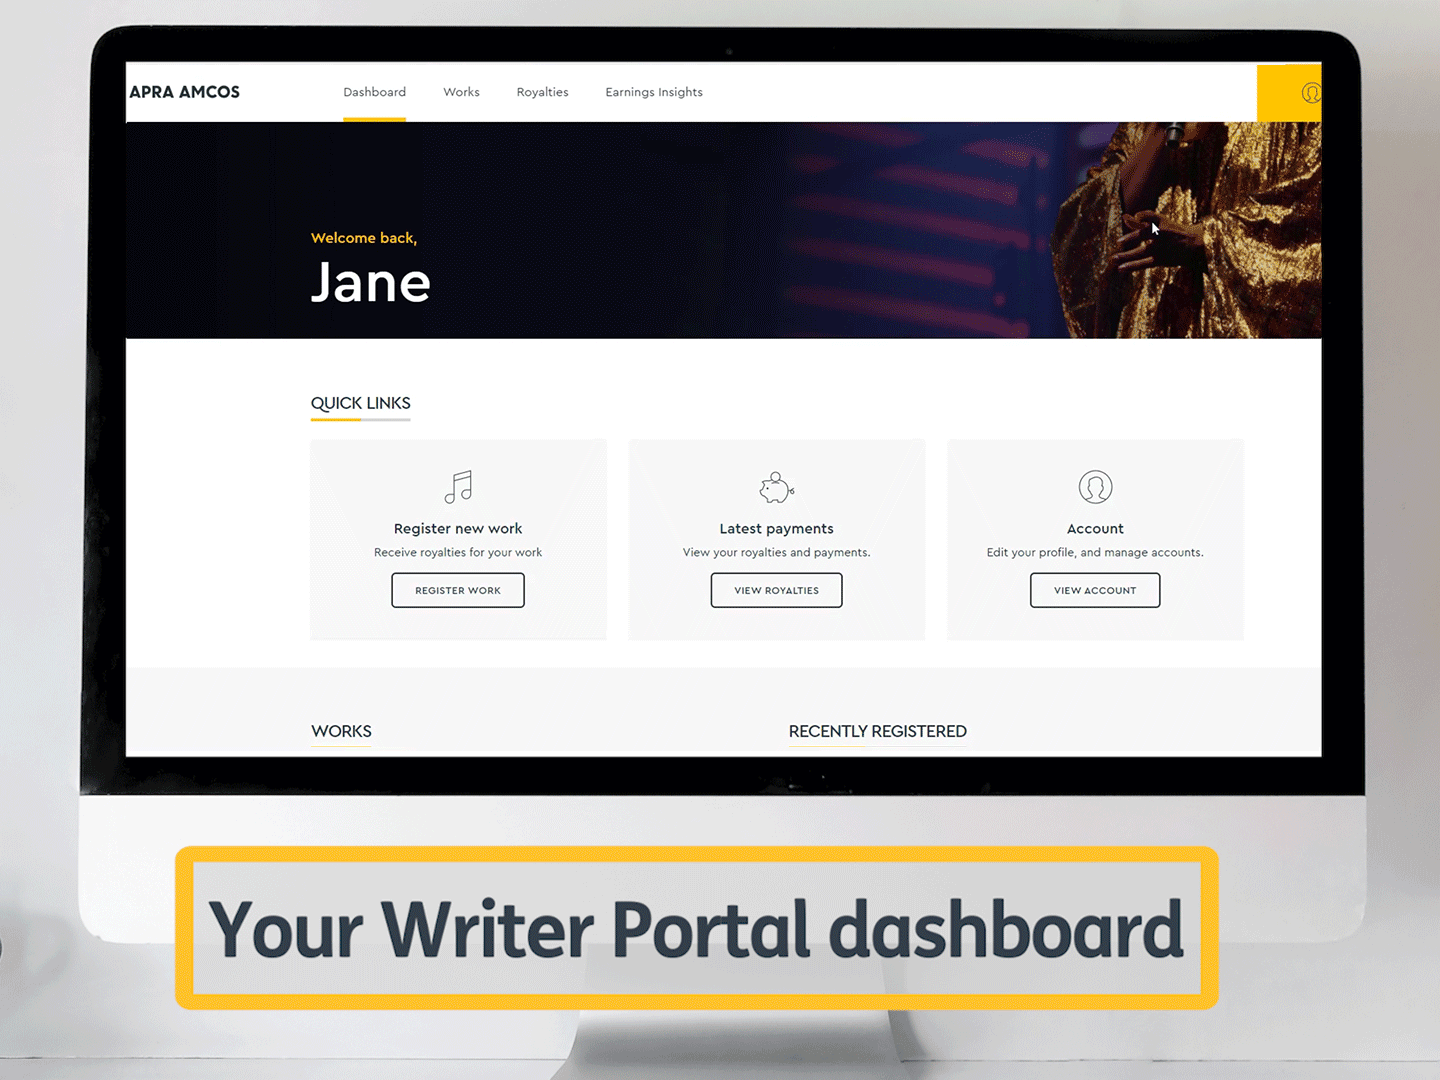 An image of a laptop showing the new writer portal interface